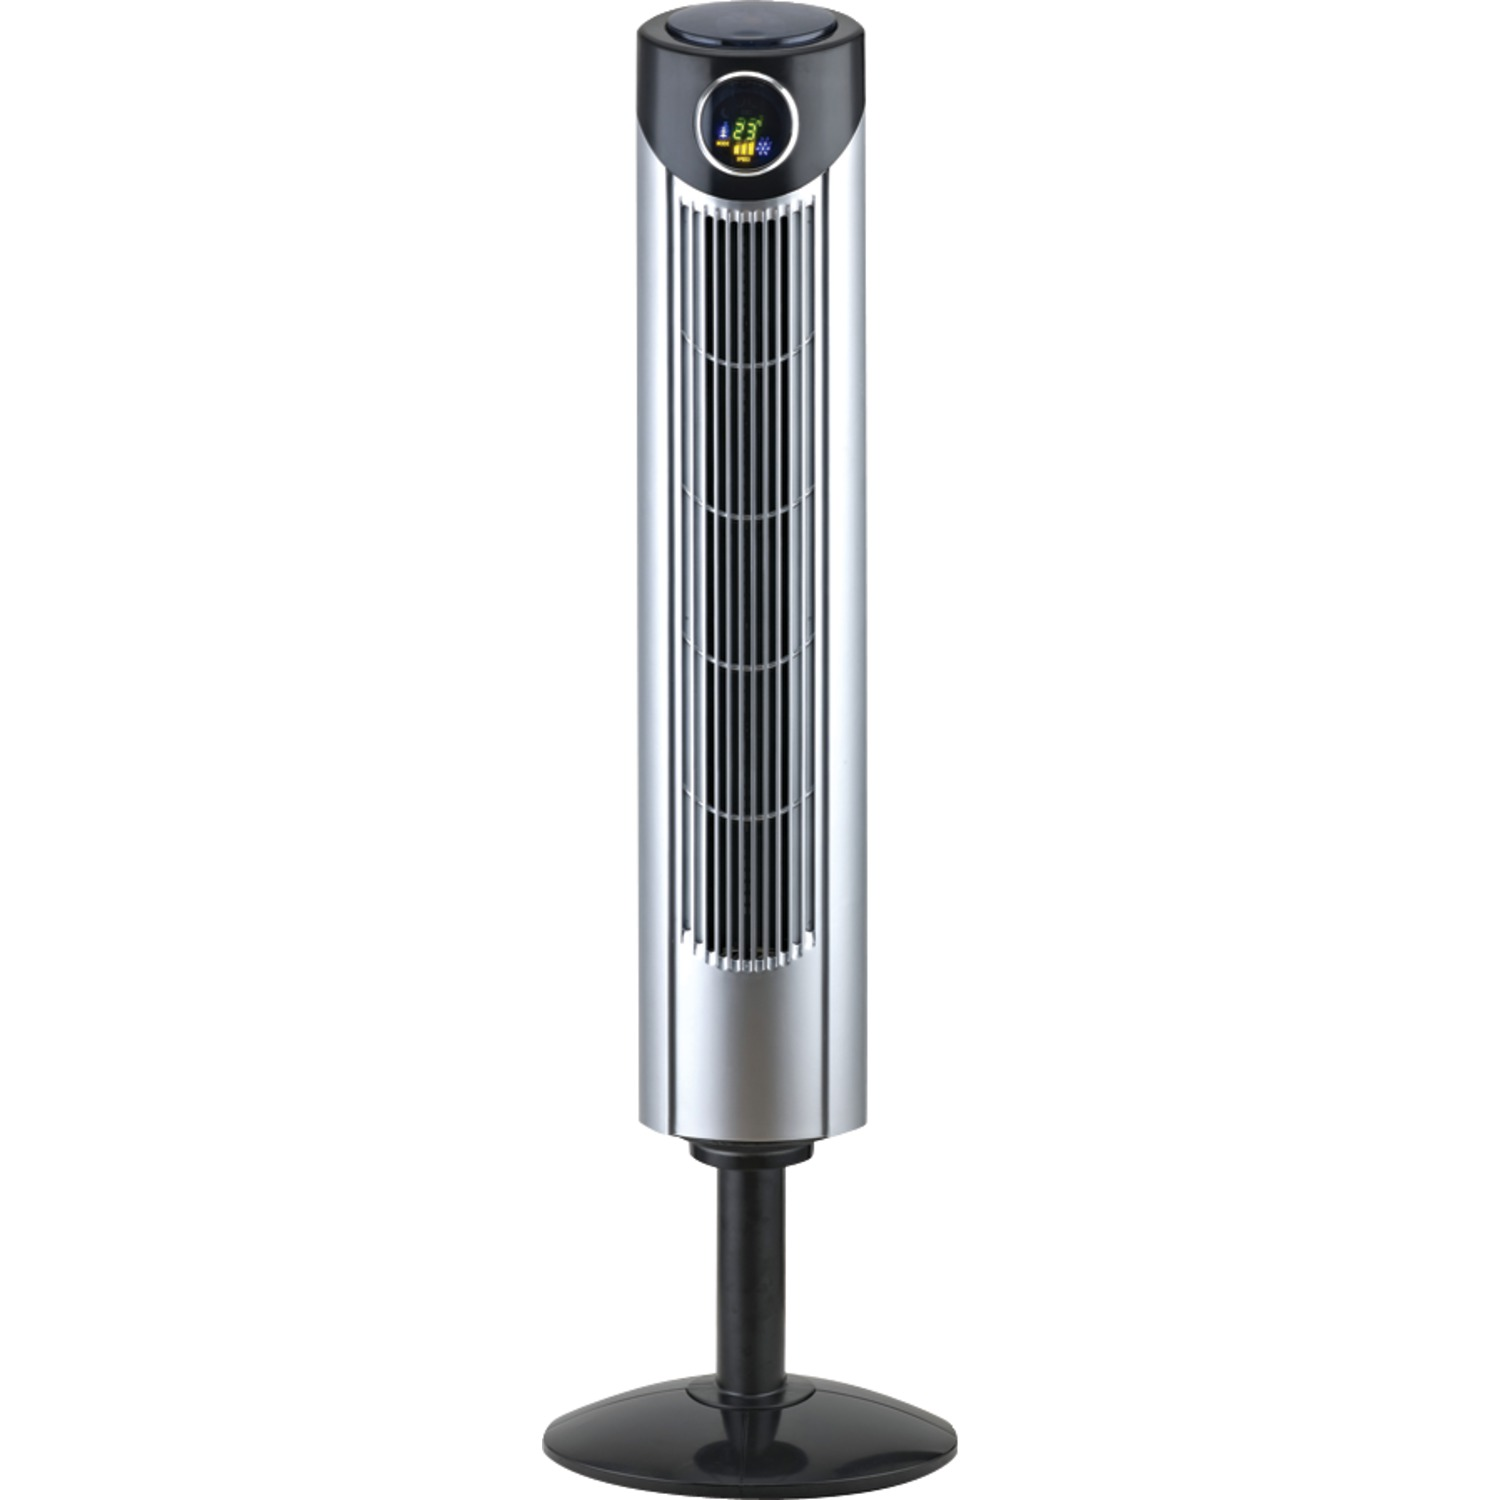 Optimus F 7522 42 Inch Tower Fan With Remote